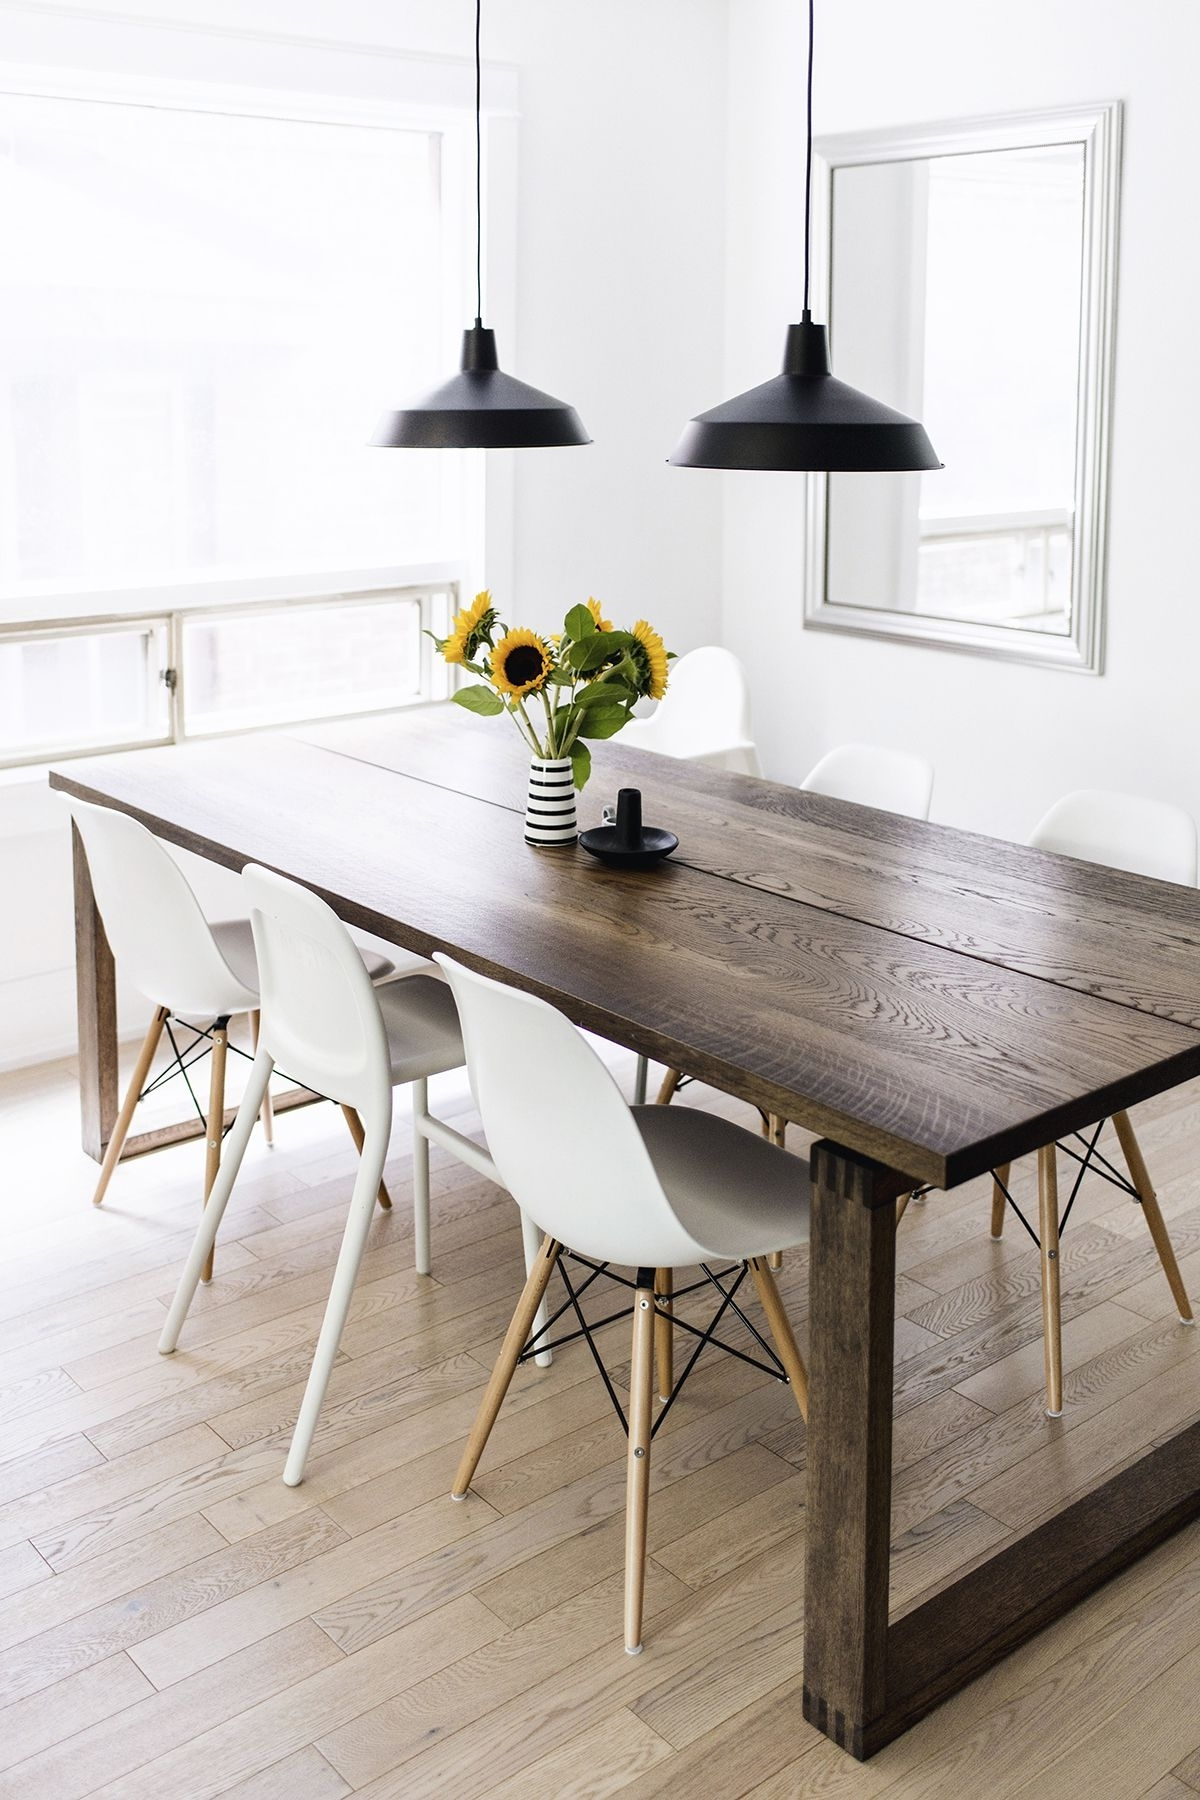 Scandinavian Dining Tables And Chairs Inside Well Known Chair : Dining Table Chairs Ijoy Chair' Kartell Chairs' Chair Set As (View 18 of 25)